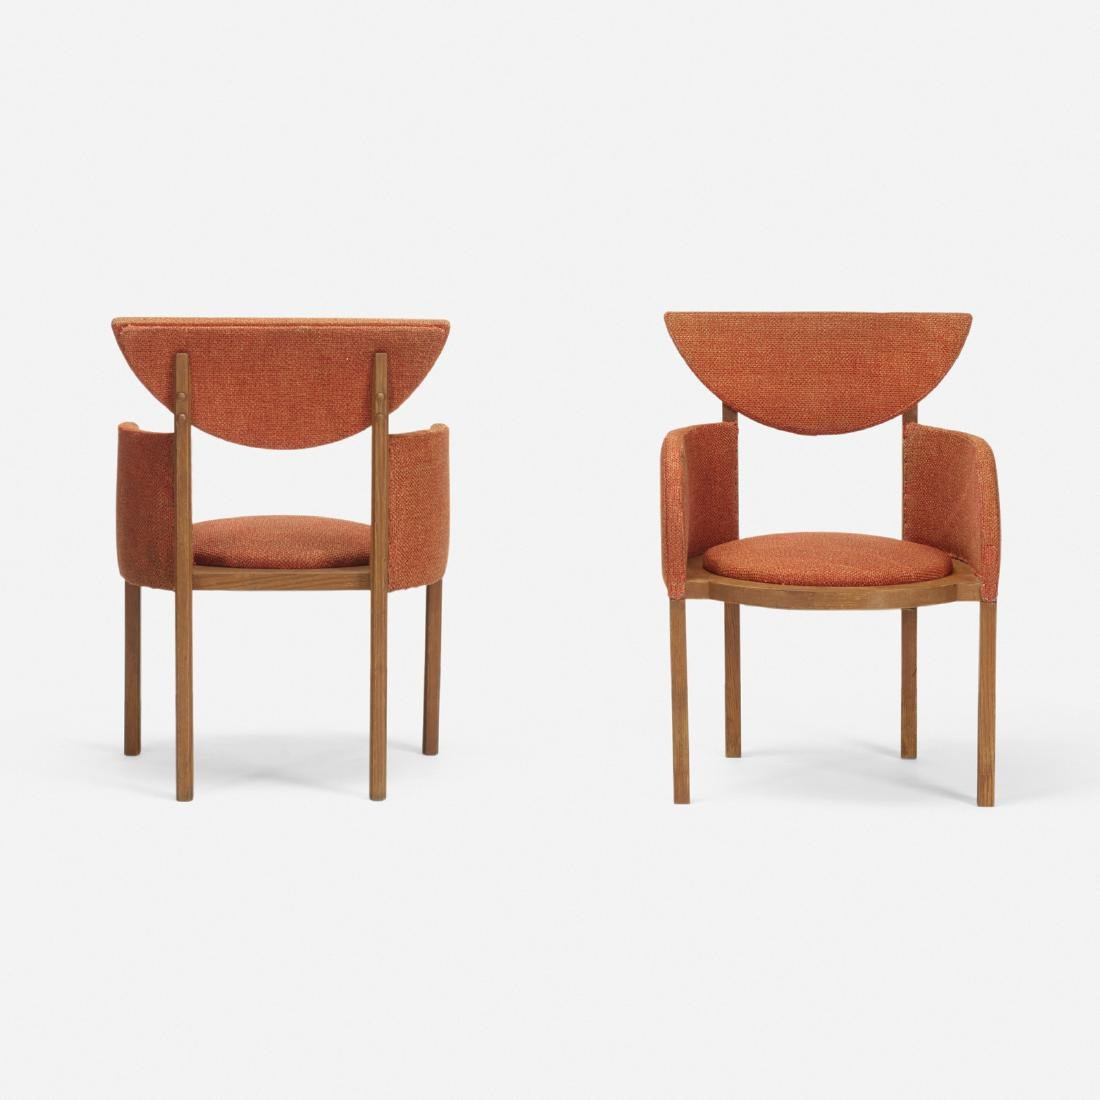 Frank Lloyd Wright, armchairs pair, Riverview Terrace